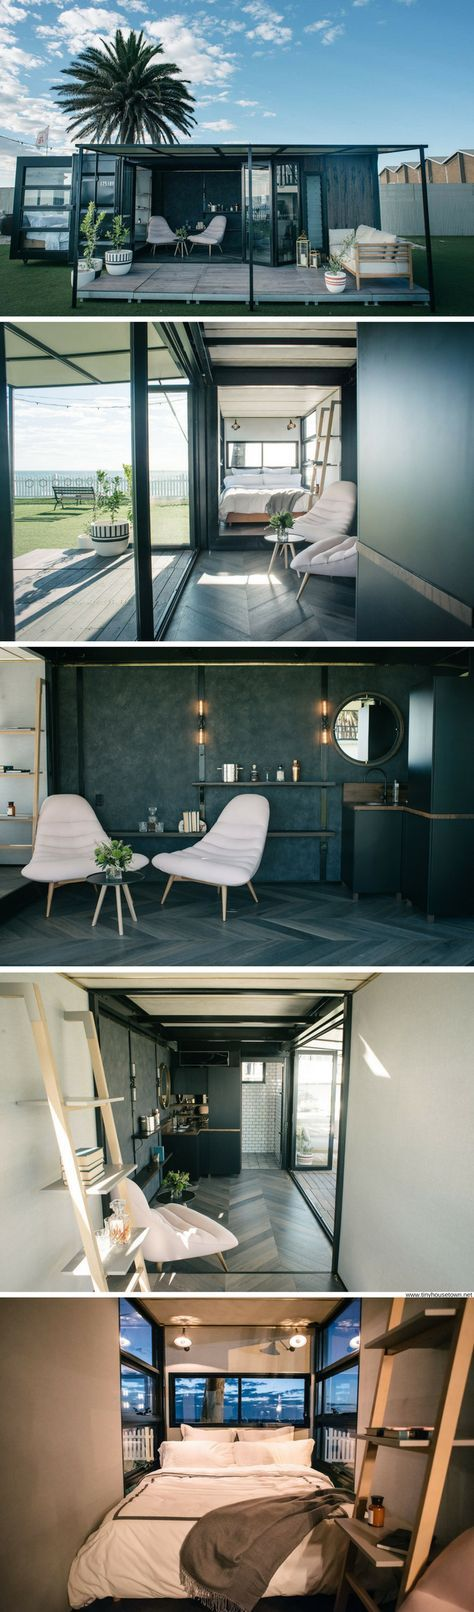 A luxury shipping container home from Australia